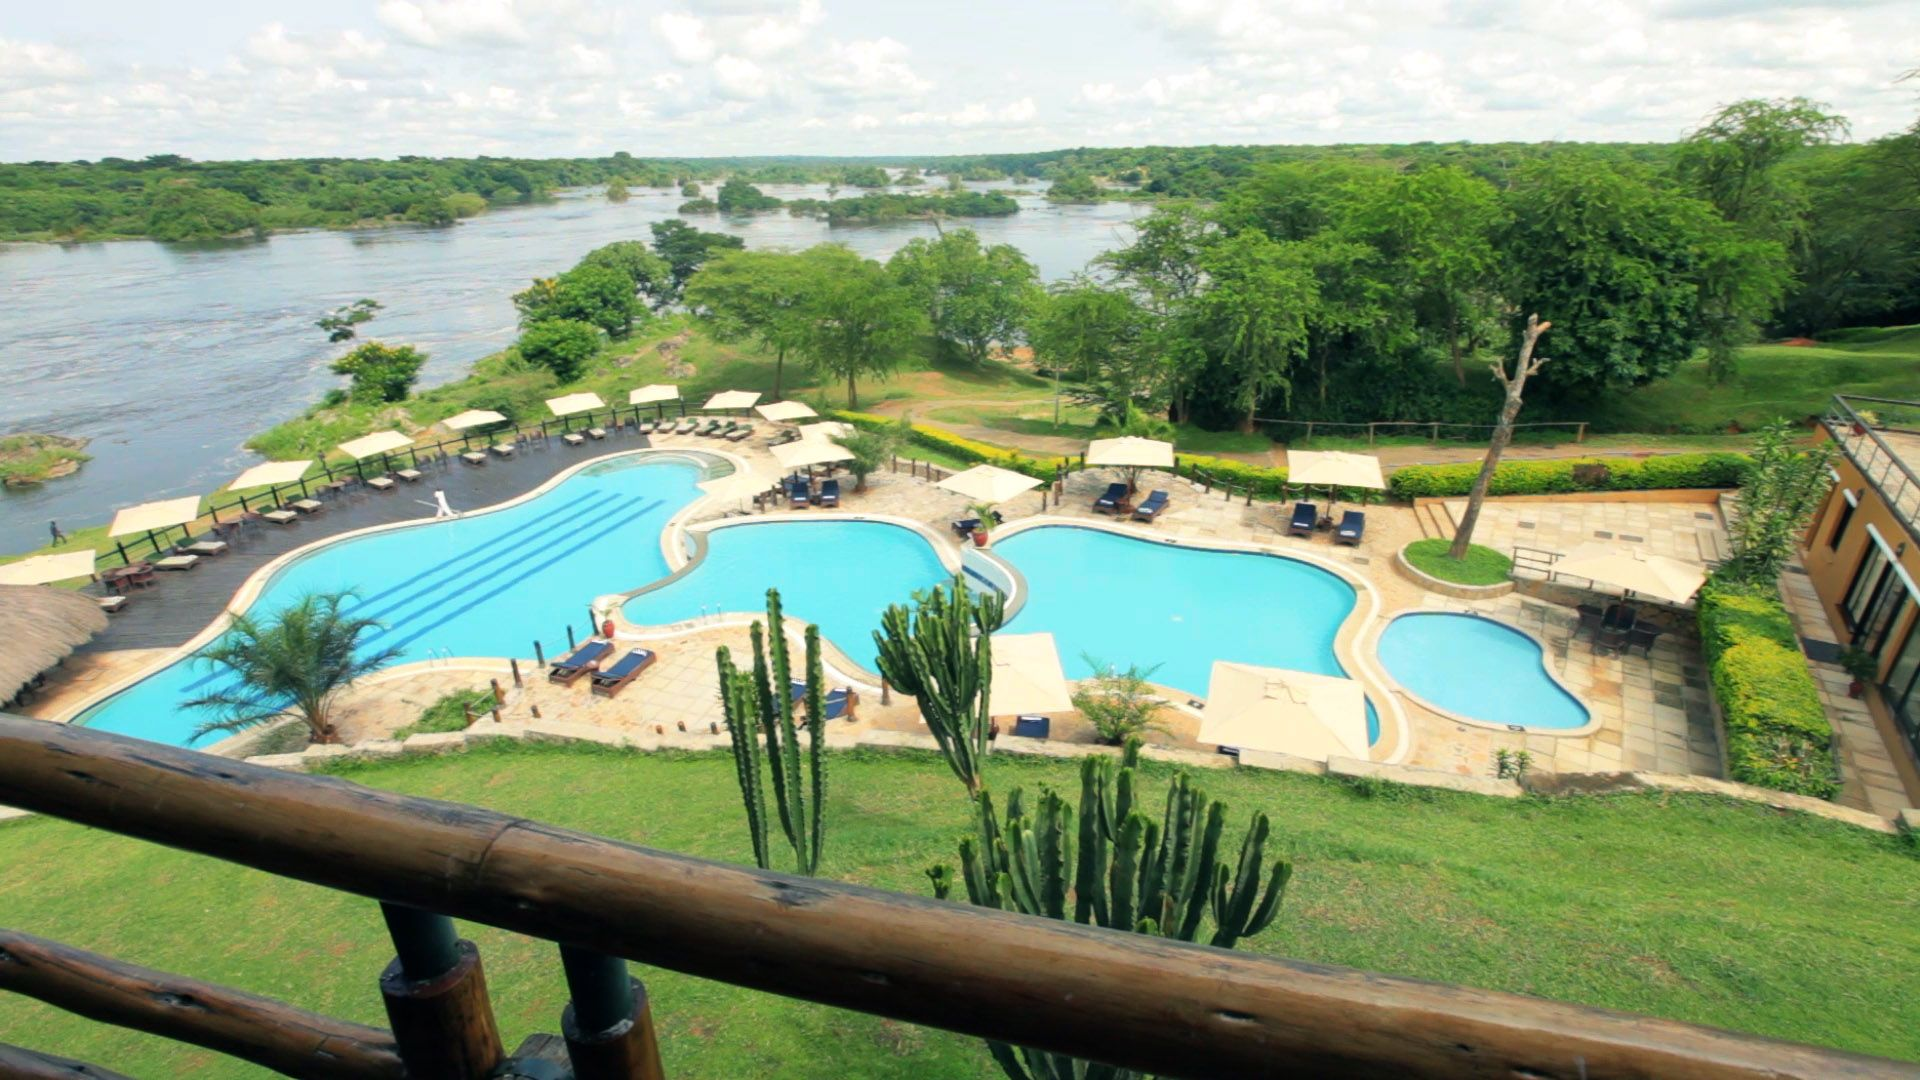 Episode 2: The epic view from the standard room at Chobe Safari Lodge